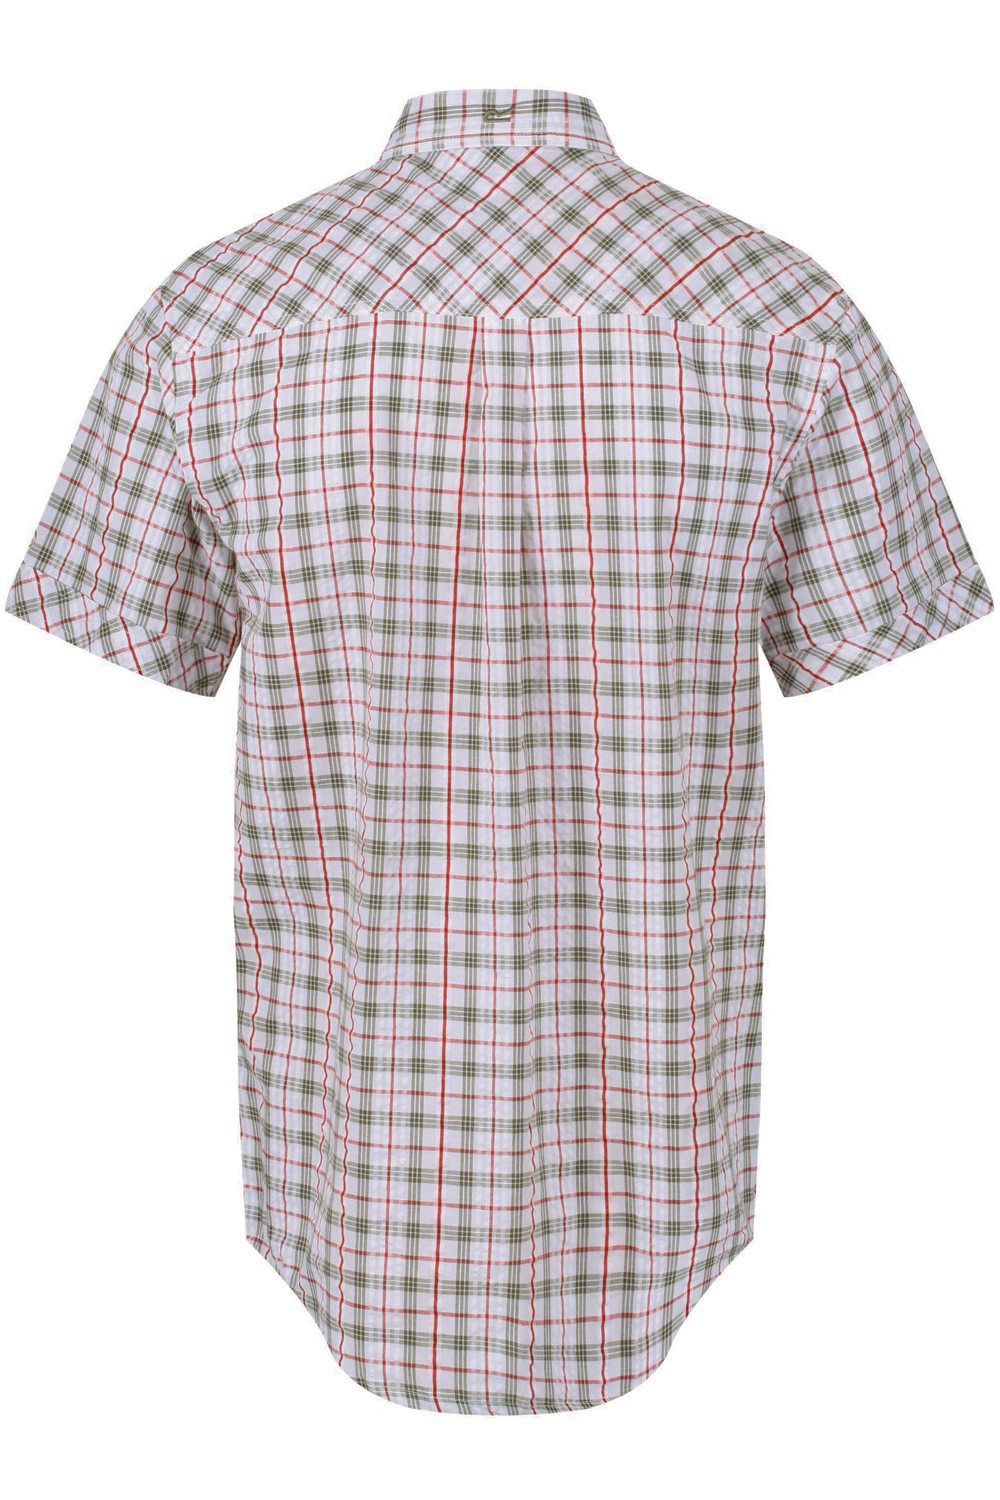 Regatta-Mens-Deakin-II-Coolweave-Cotton-Short-Sleeved-Summer-Check-Shirt-RRP-50 thumbnail 11